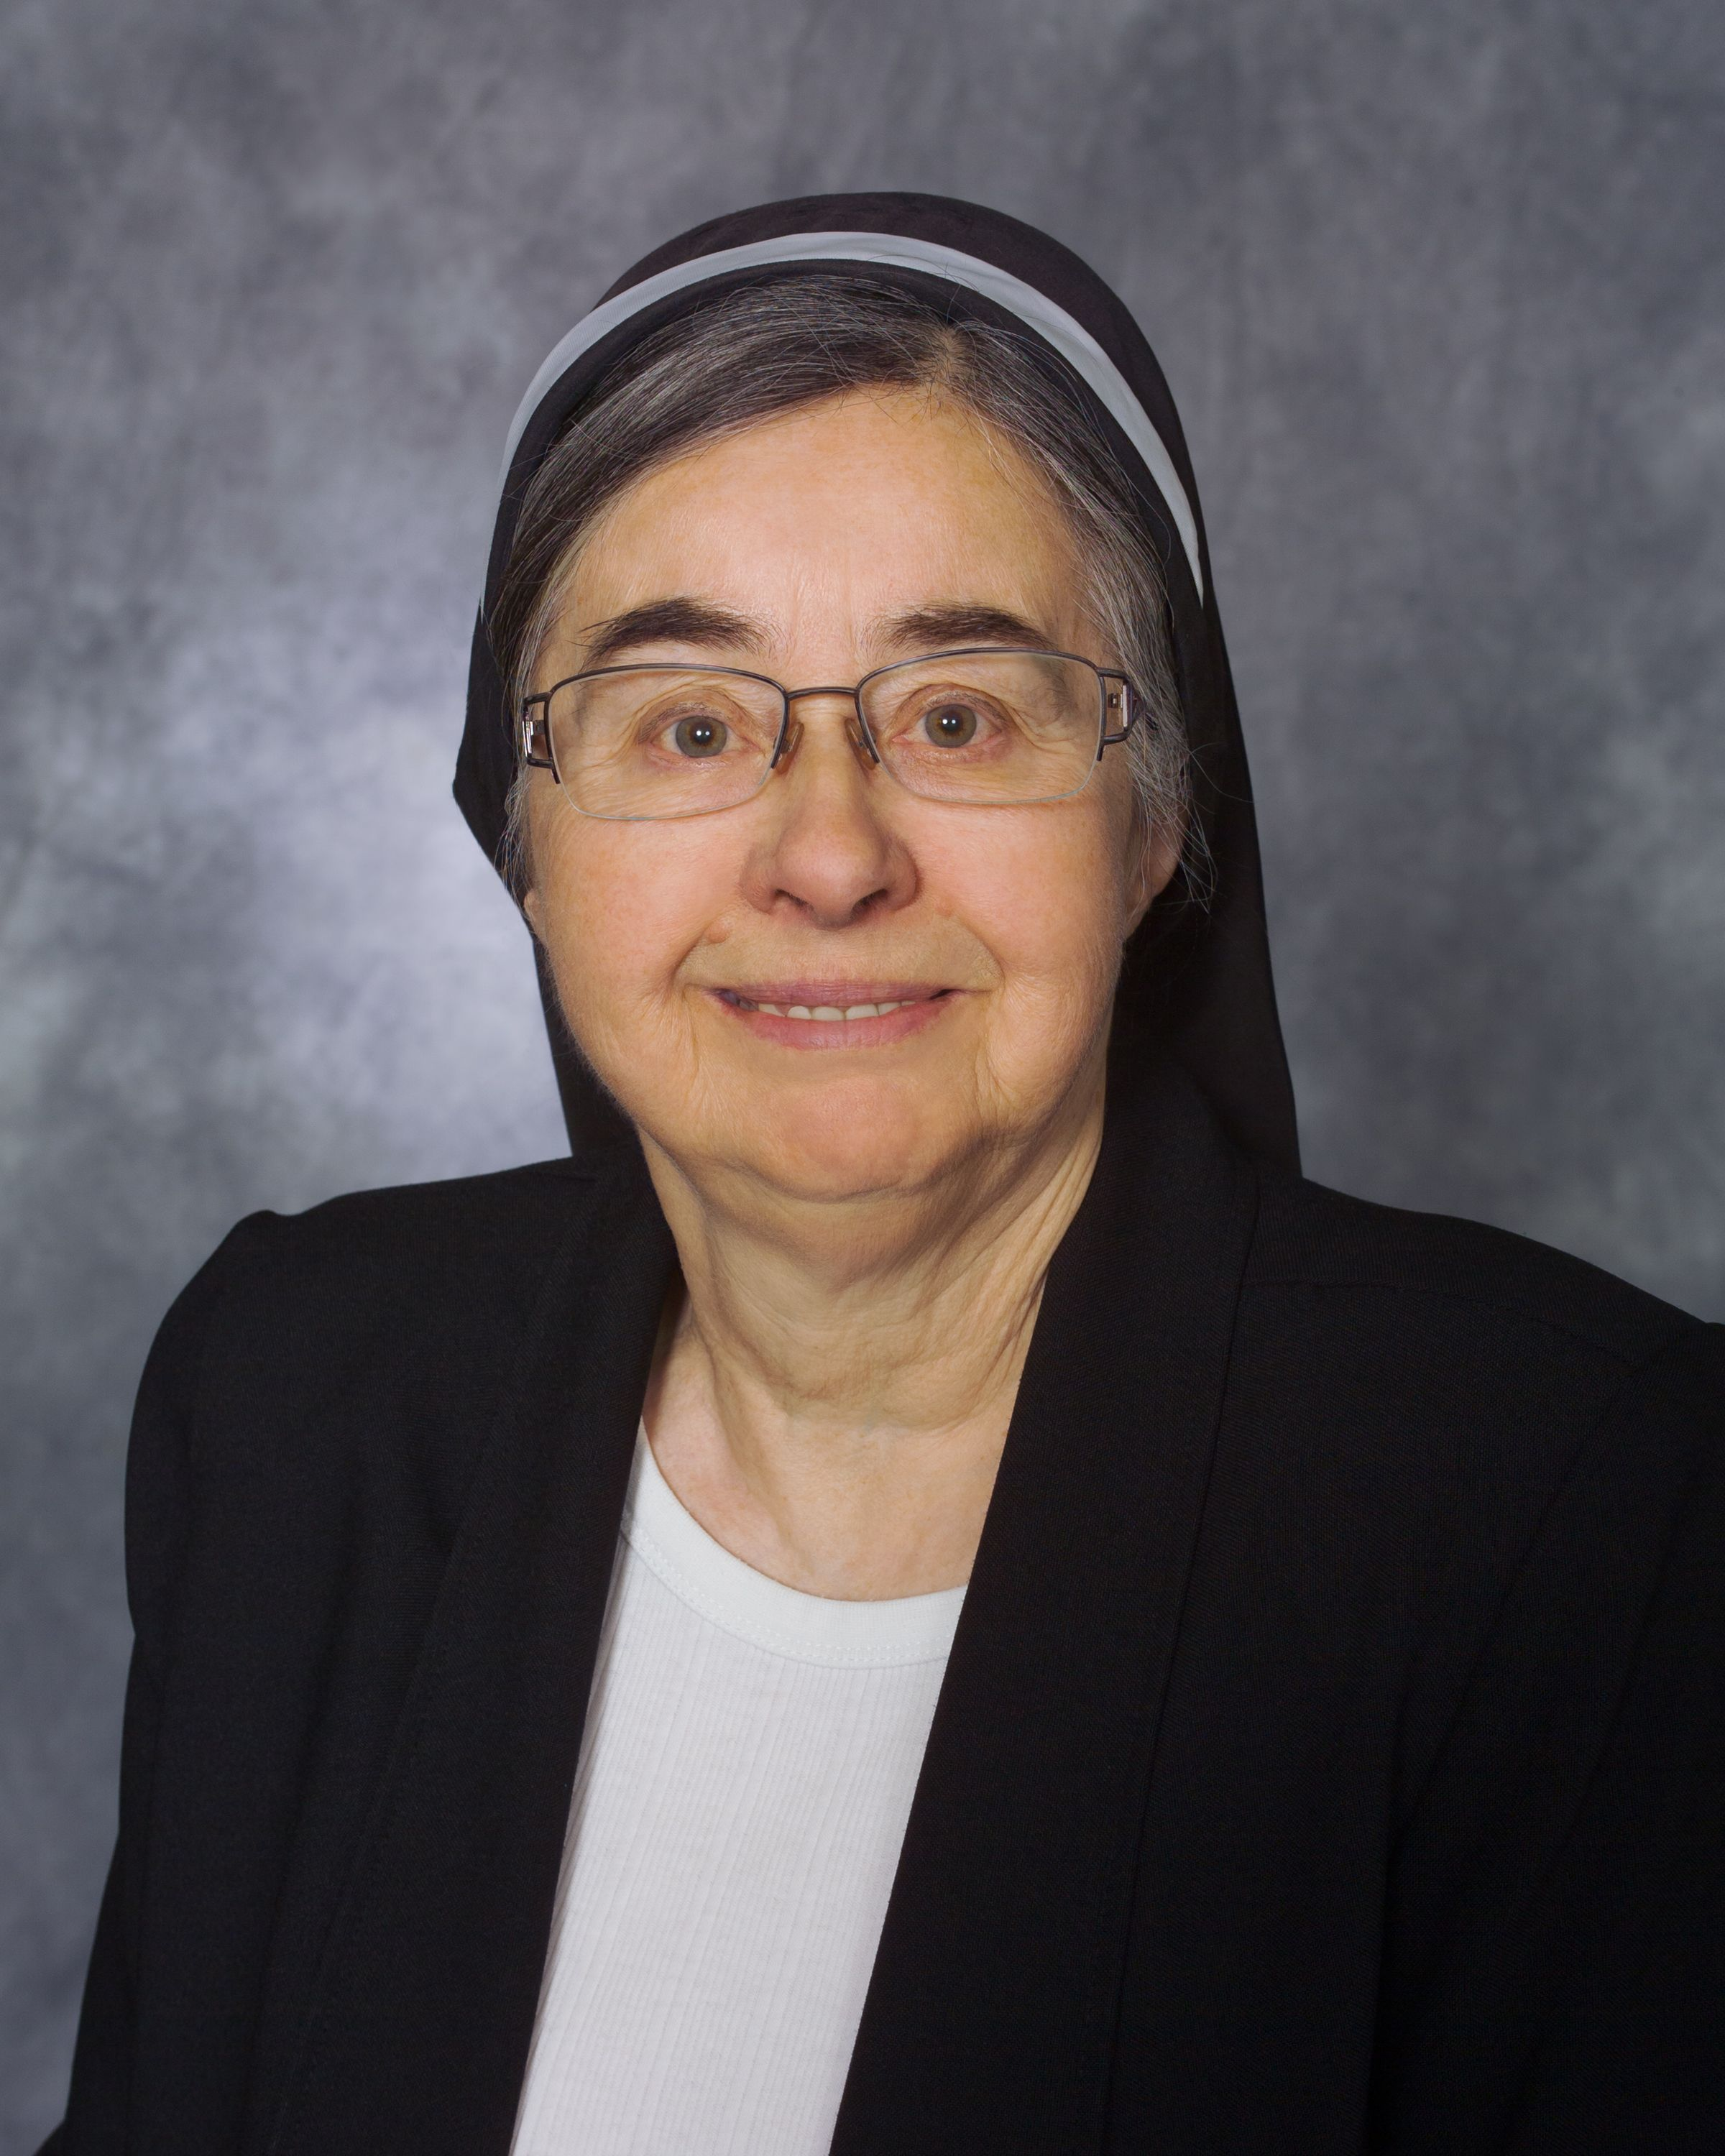 Sr. Joy Rose